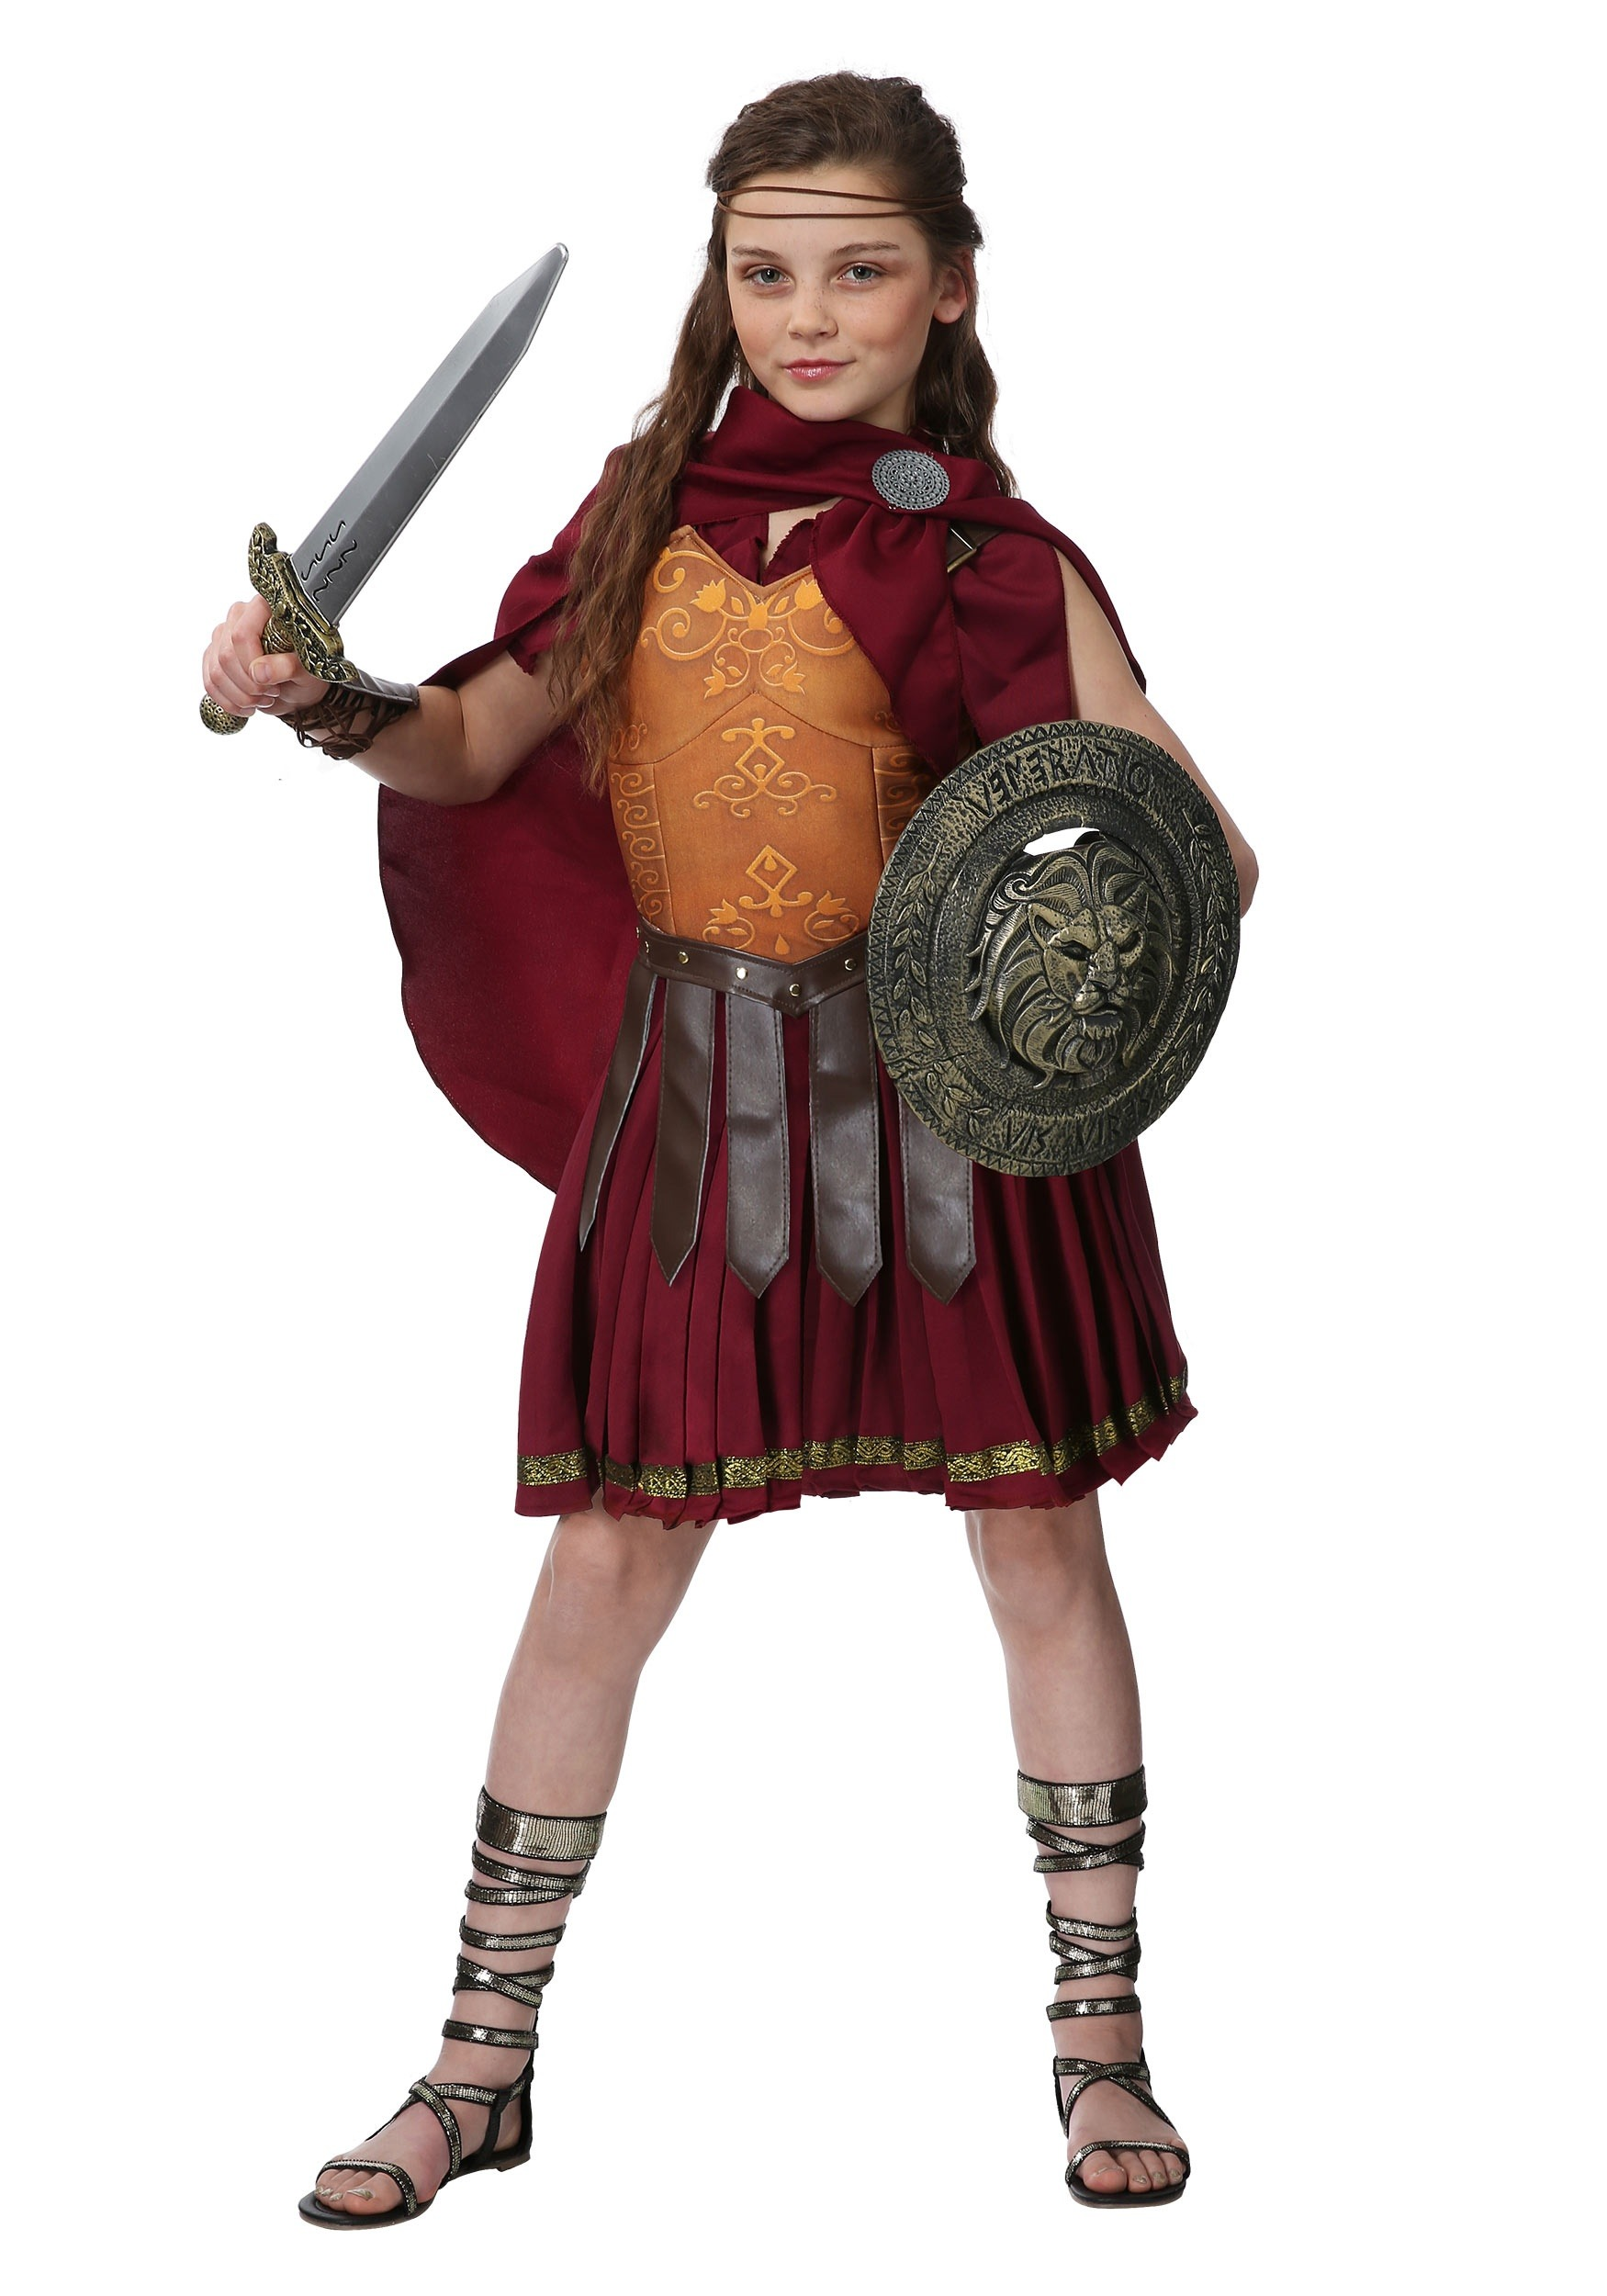 Gladiator Girls Costume  sc 1 st  Halloween Costumes & Gladiator Costume for Girls